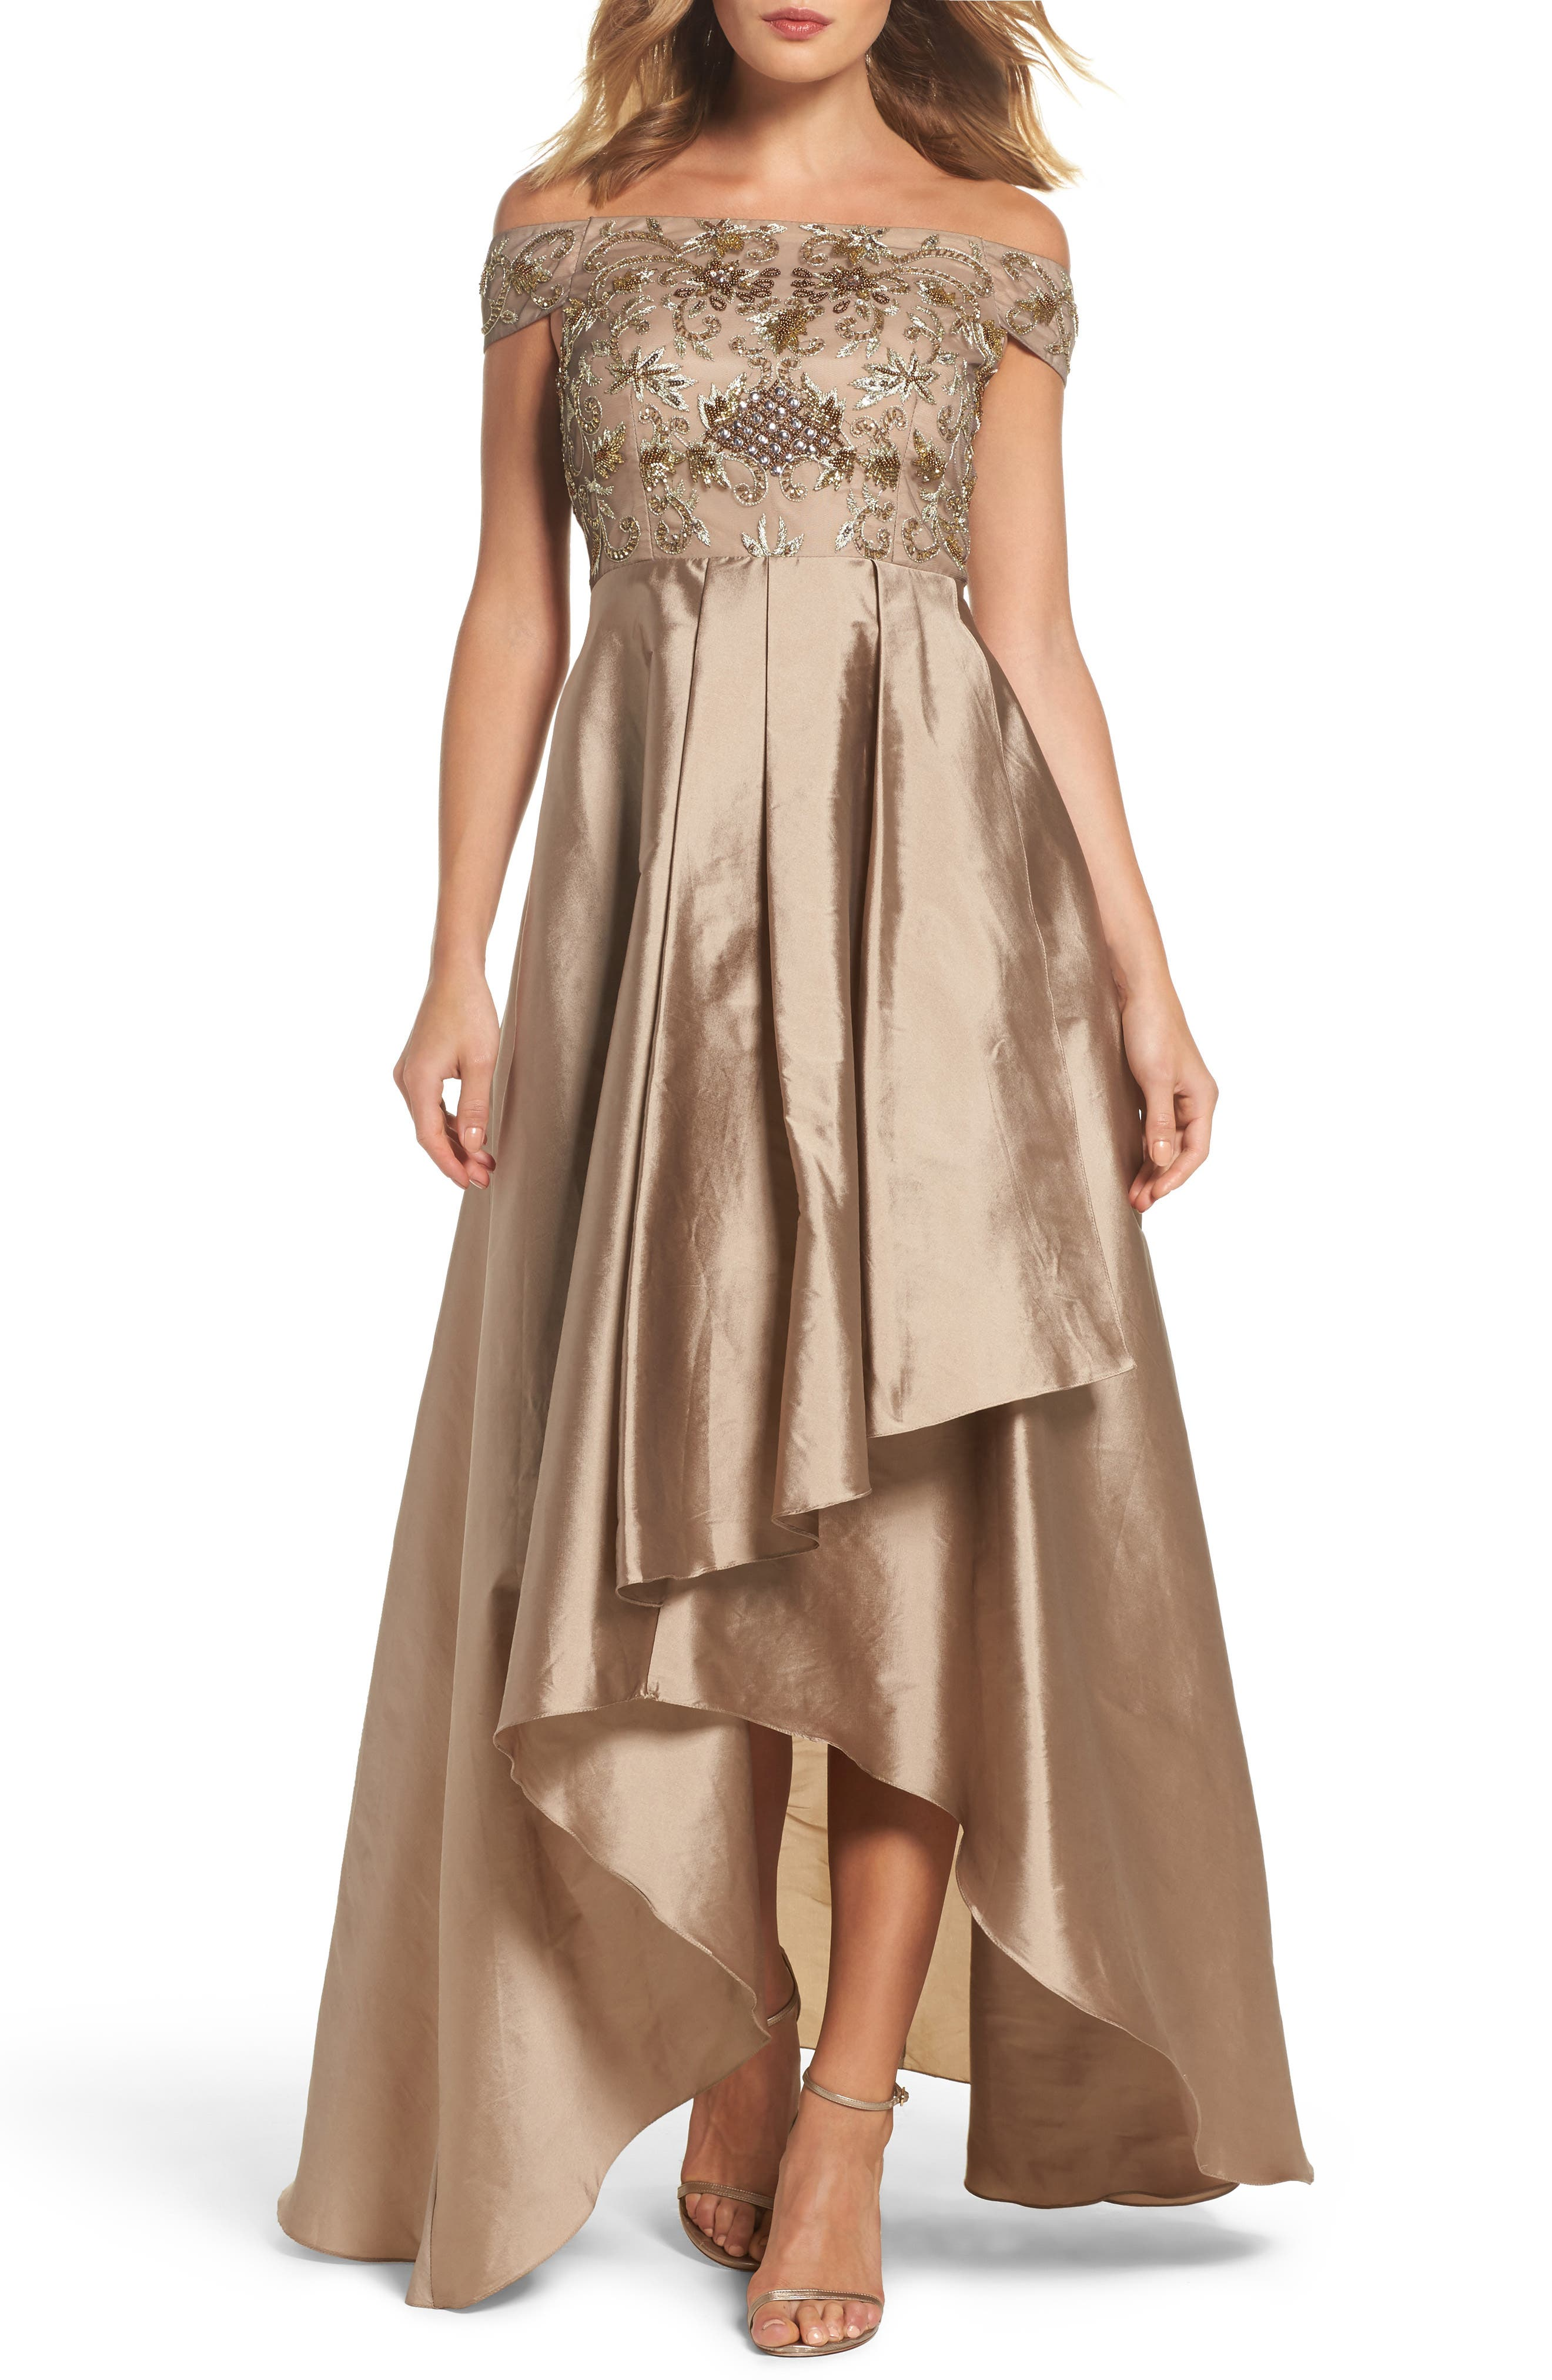 Main Image - Adrianna Papell Embellished High/Low Off the Shoulder Dress